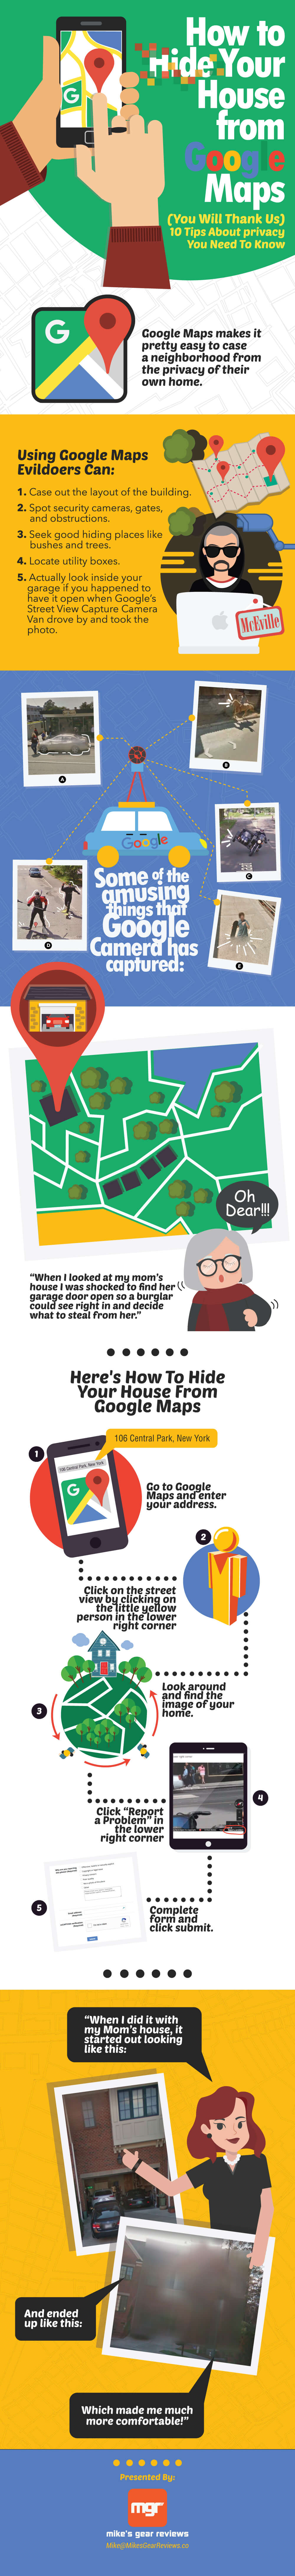 Hide your House from Google Maps